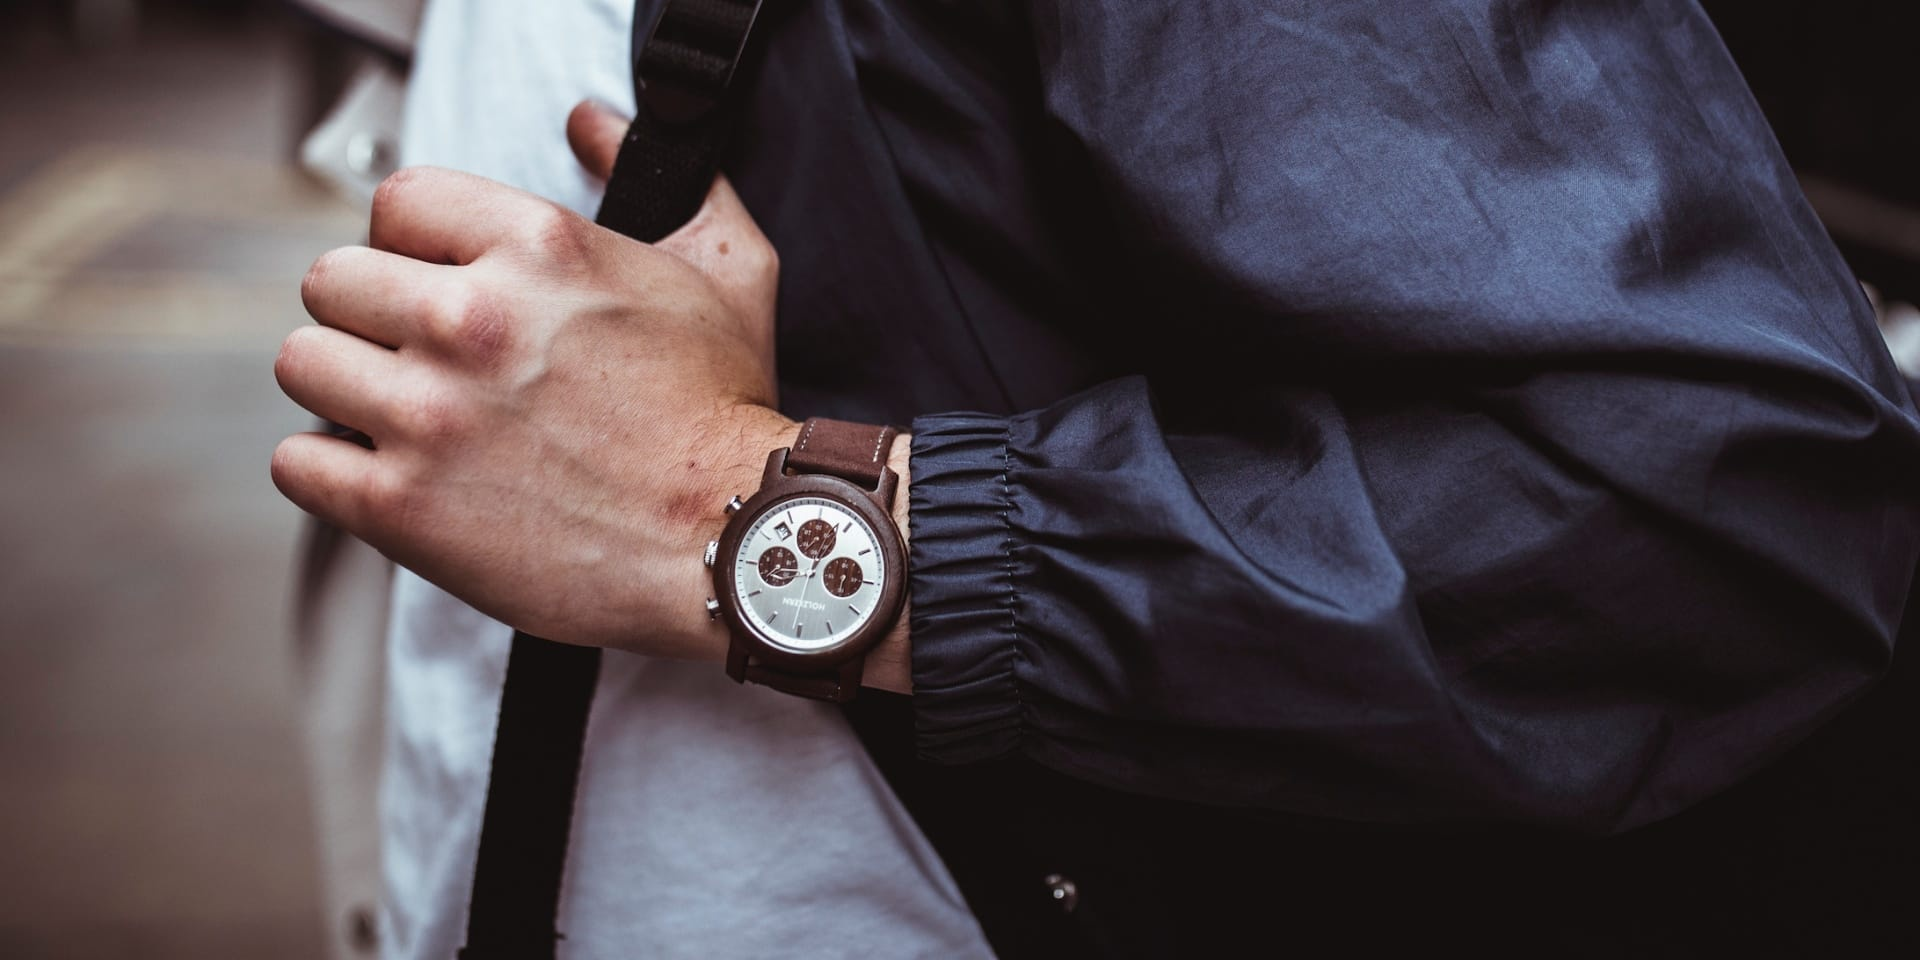 8 Reasons Why You Should own a Chronograph made of Wood and Stone